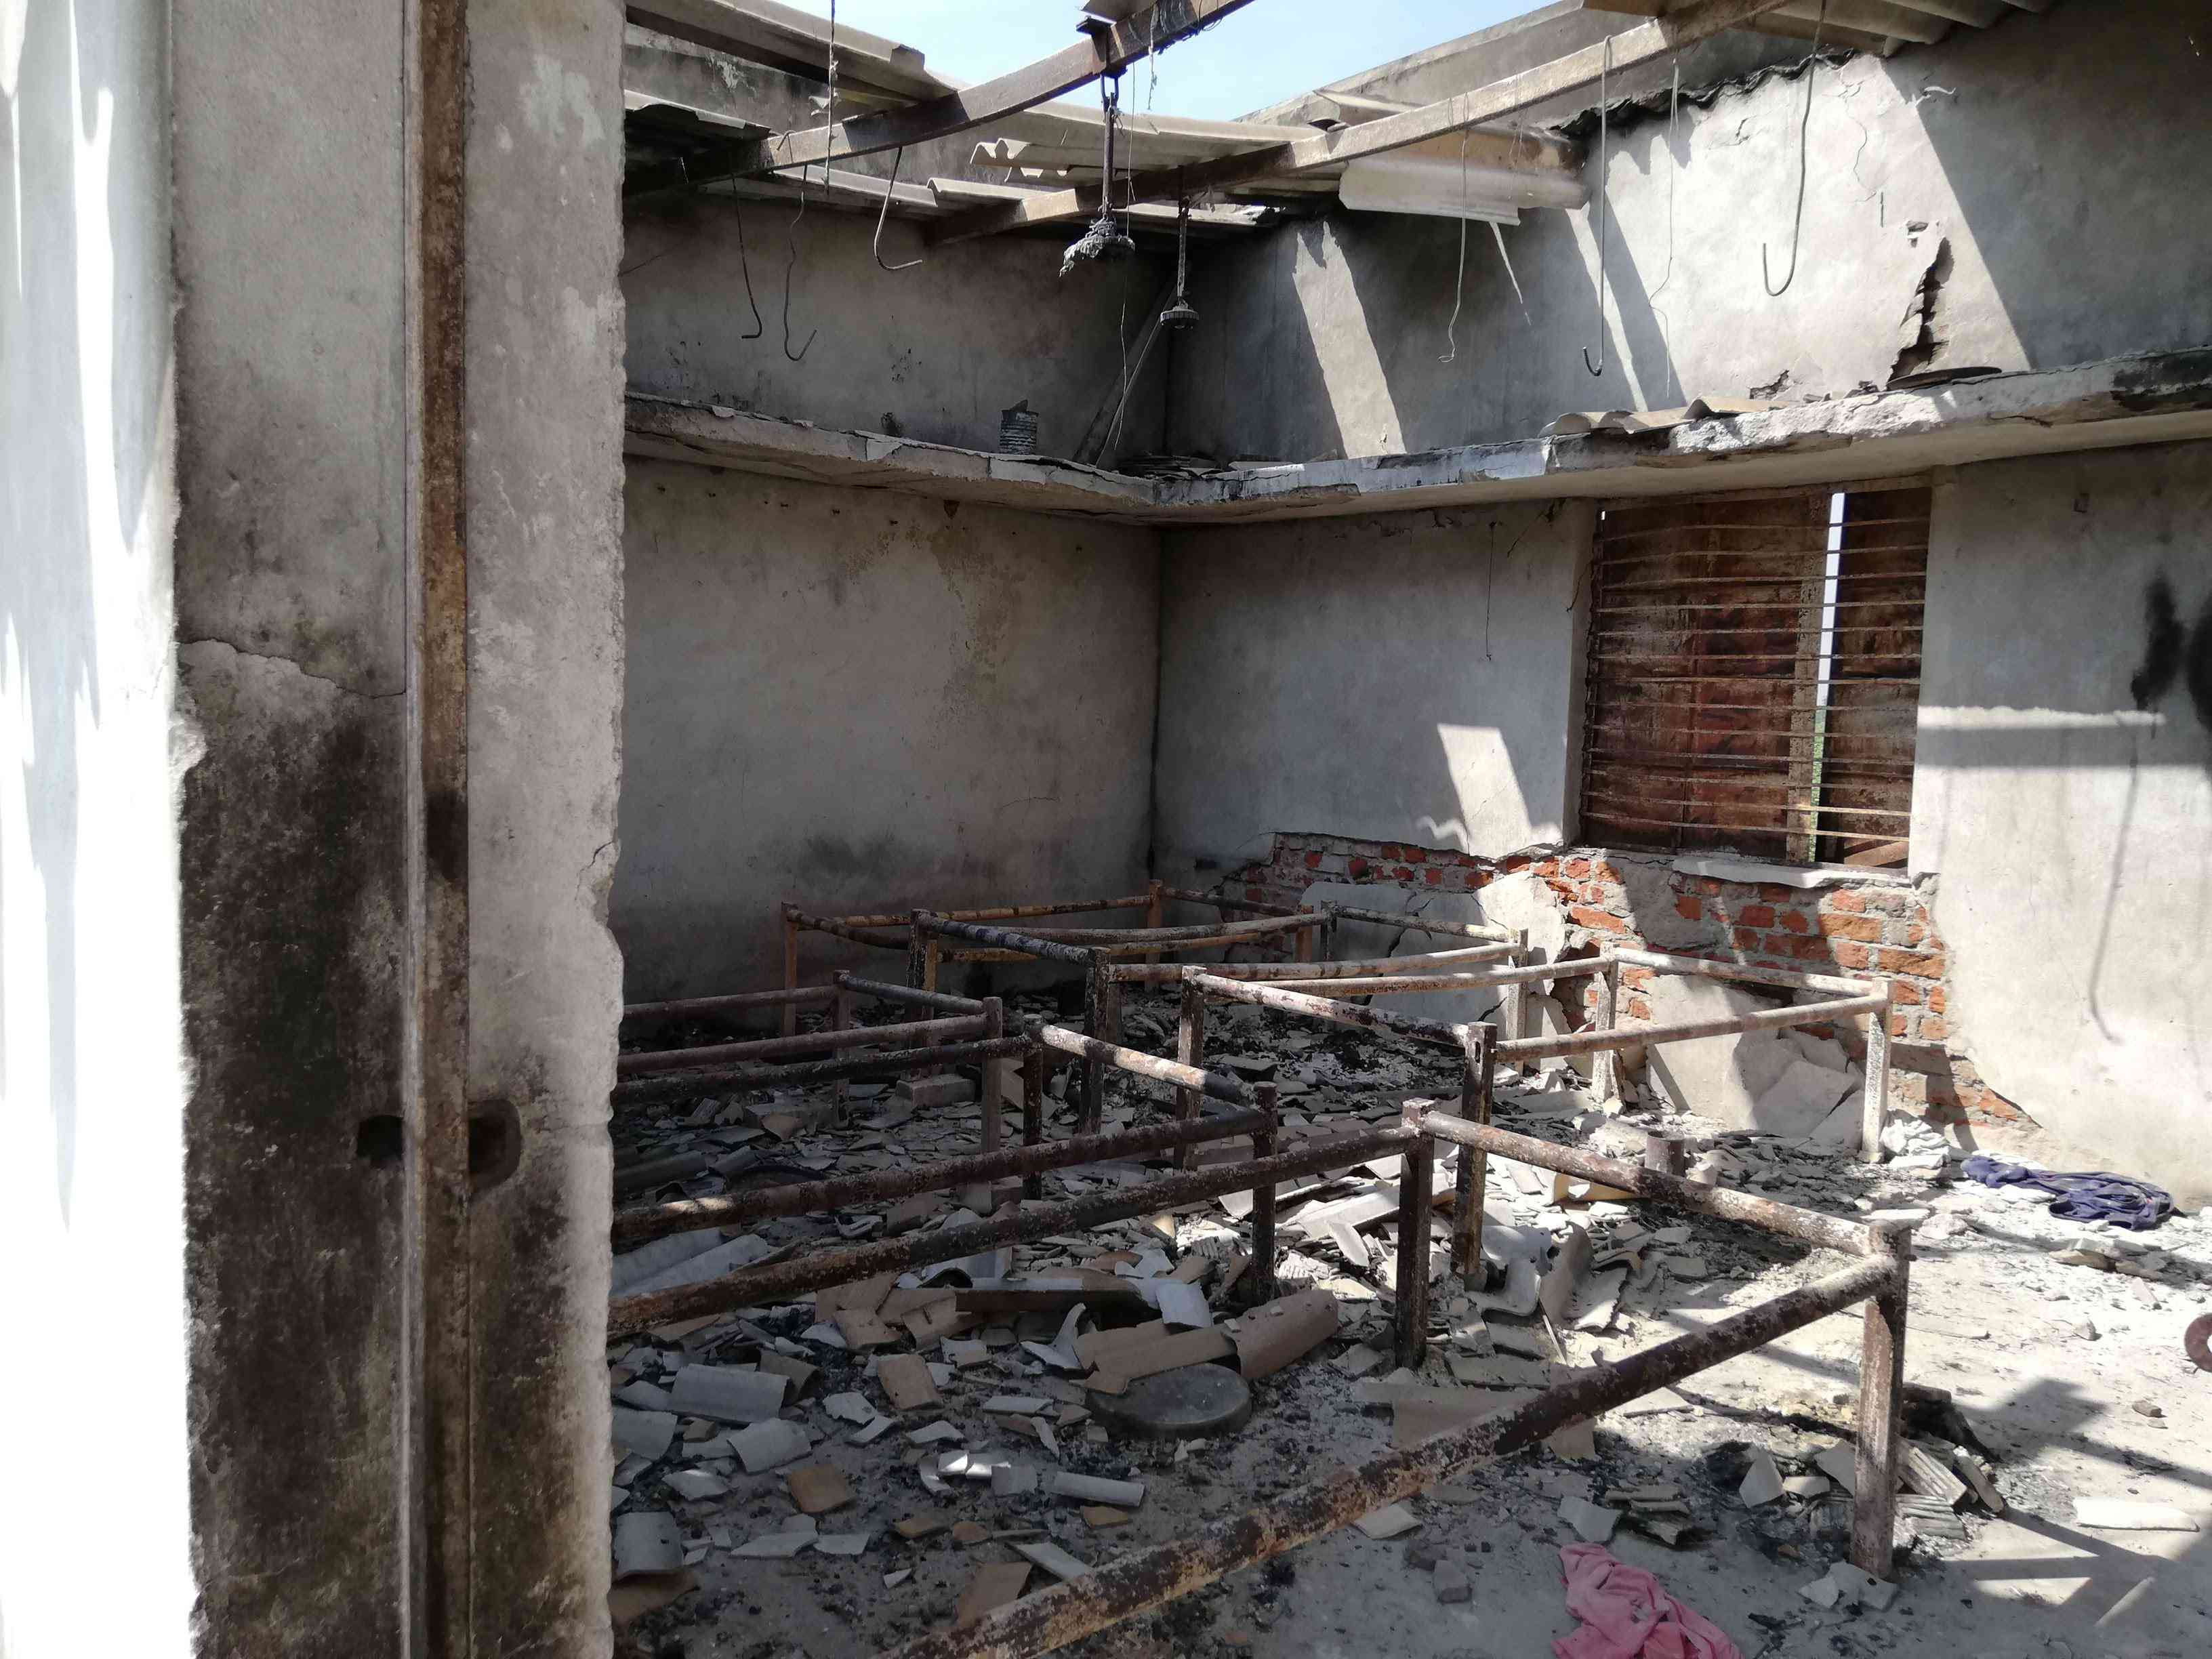 A mob burnt down the living quarters of workers at the factory where the accused man was employed. The compound is now deserted. Credit: Mridula Chari